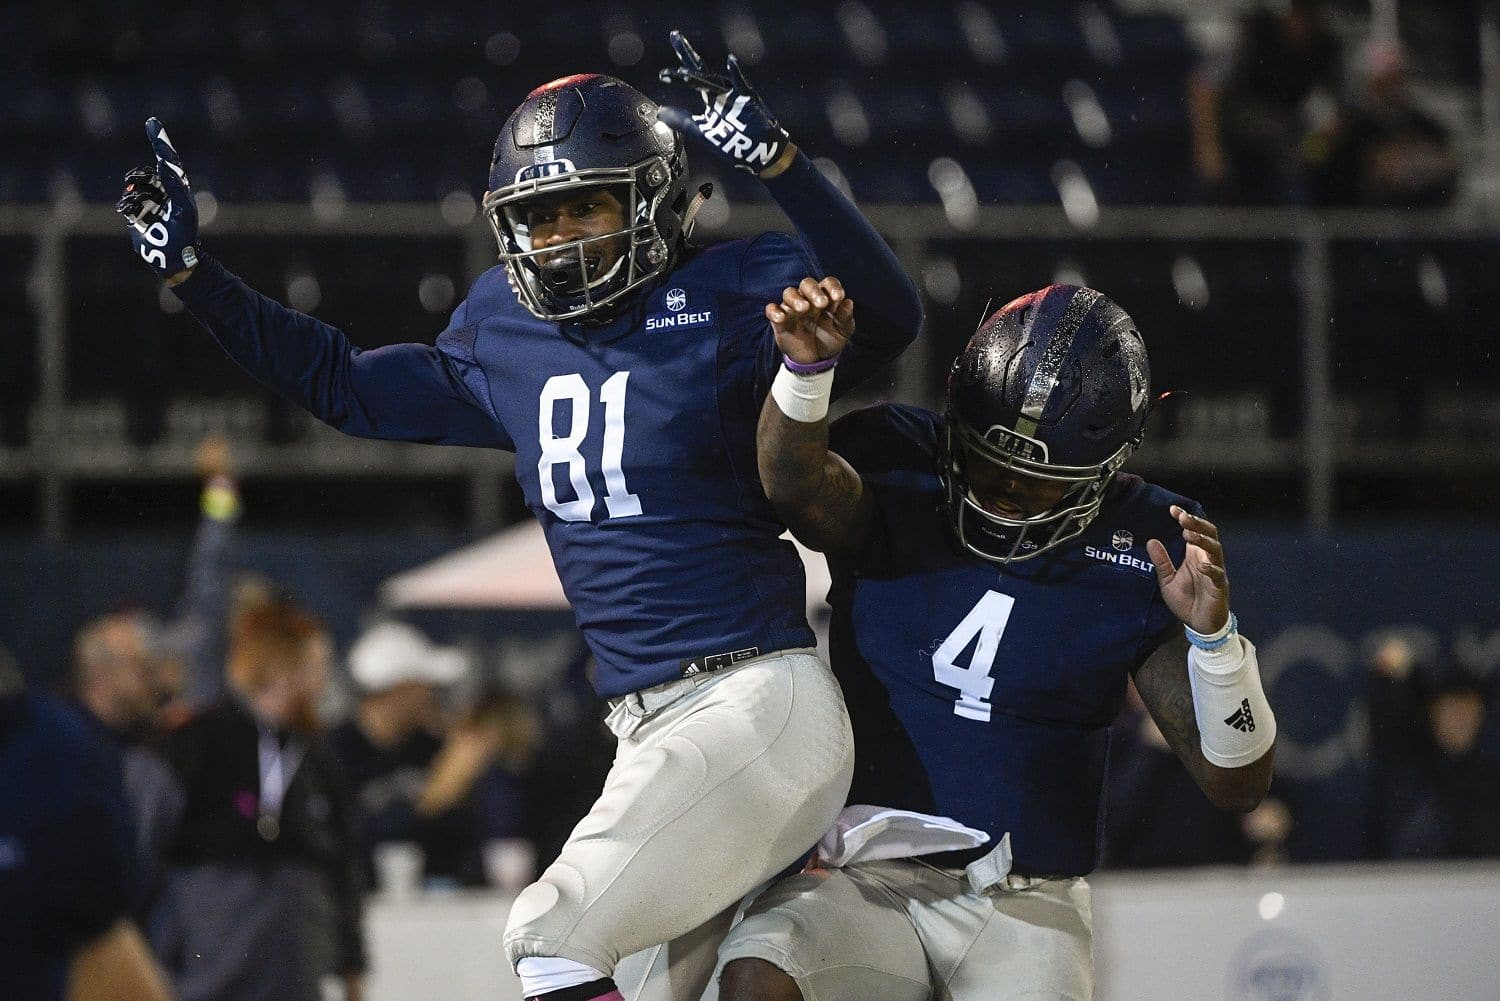 Georgia Southern wide receiver Darion Anderson (81) celebrates his touchdown with quarterback Shai Werts during the first half of an NCAA college football game against Appalachian State, Thursday, Oct. 25, 2018, in Statesboro, Ga. (AP Photo/John Amis)